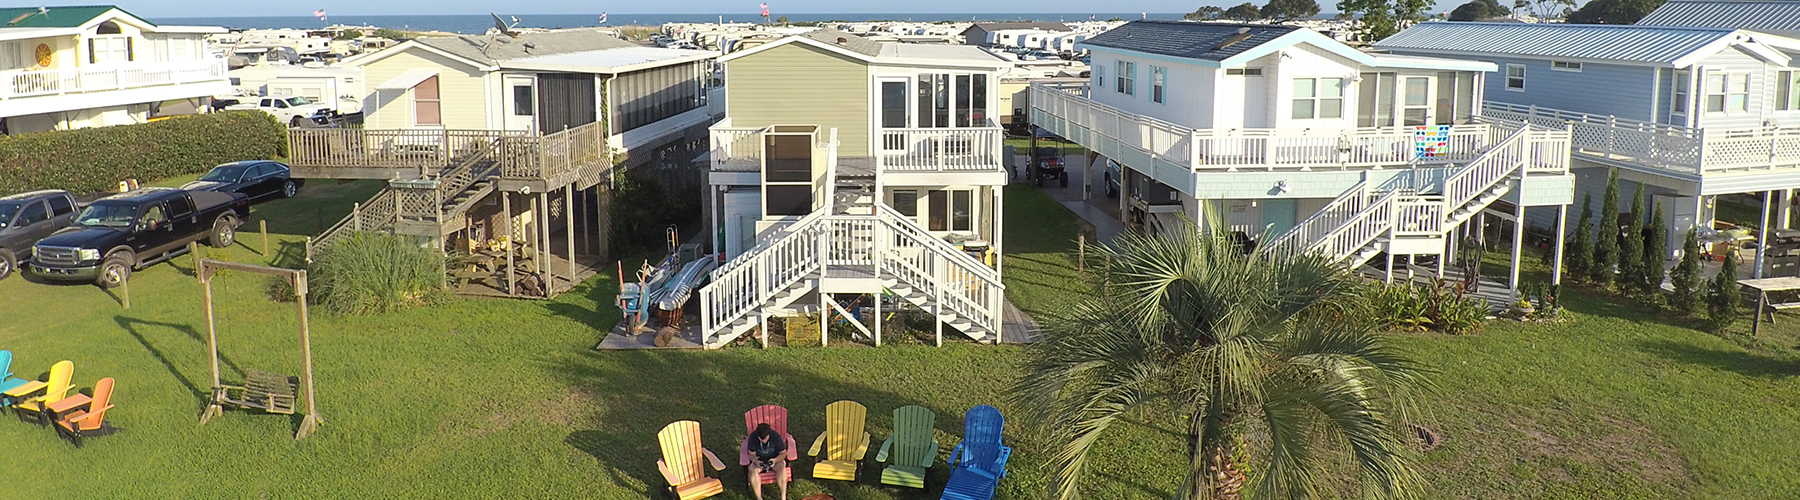 Vacation Rentals Myrtle Beach Campgrounds Lakewood